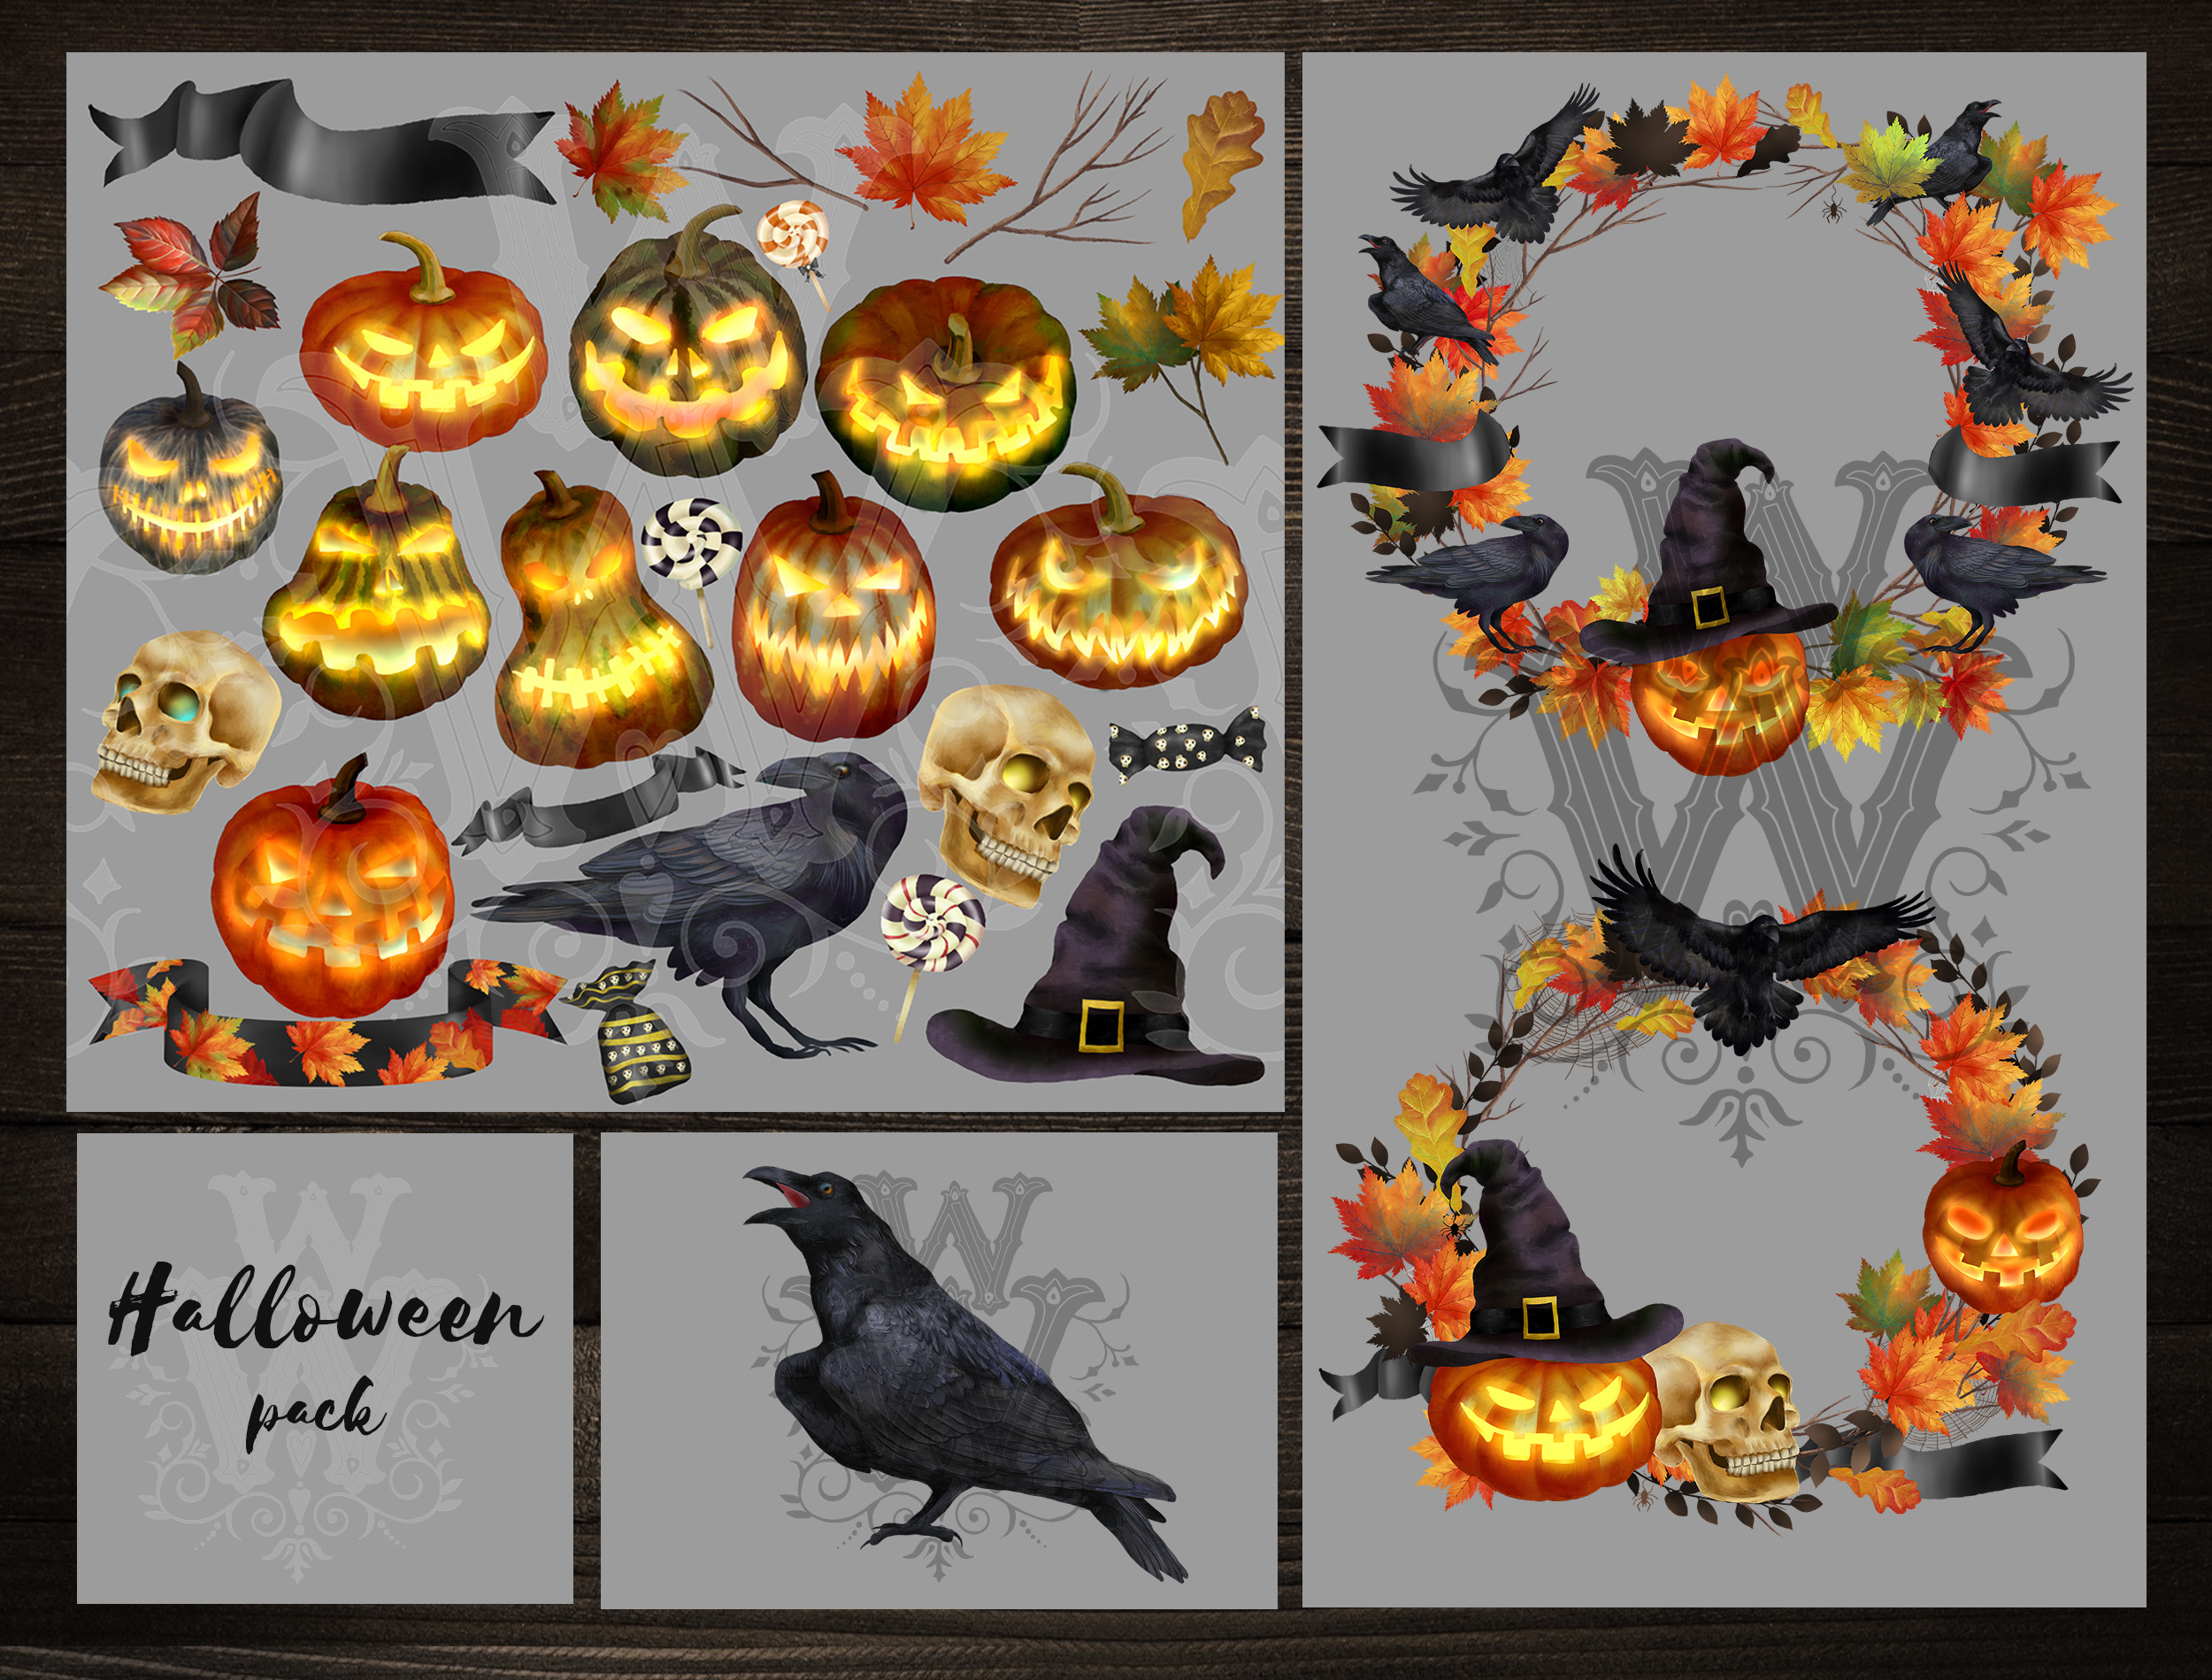 Spooky Halloween clipart with pumpkins, skull and ravens example image 2